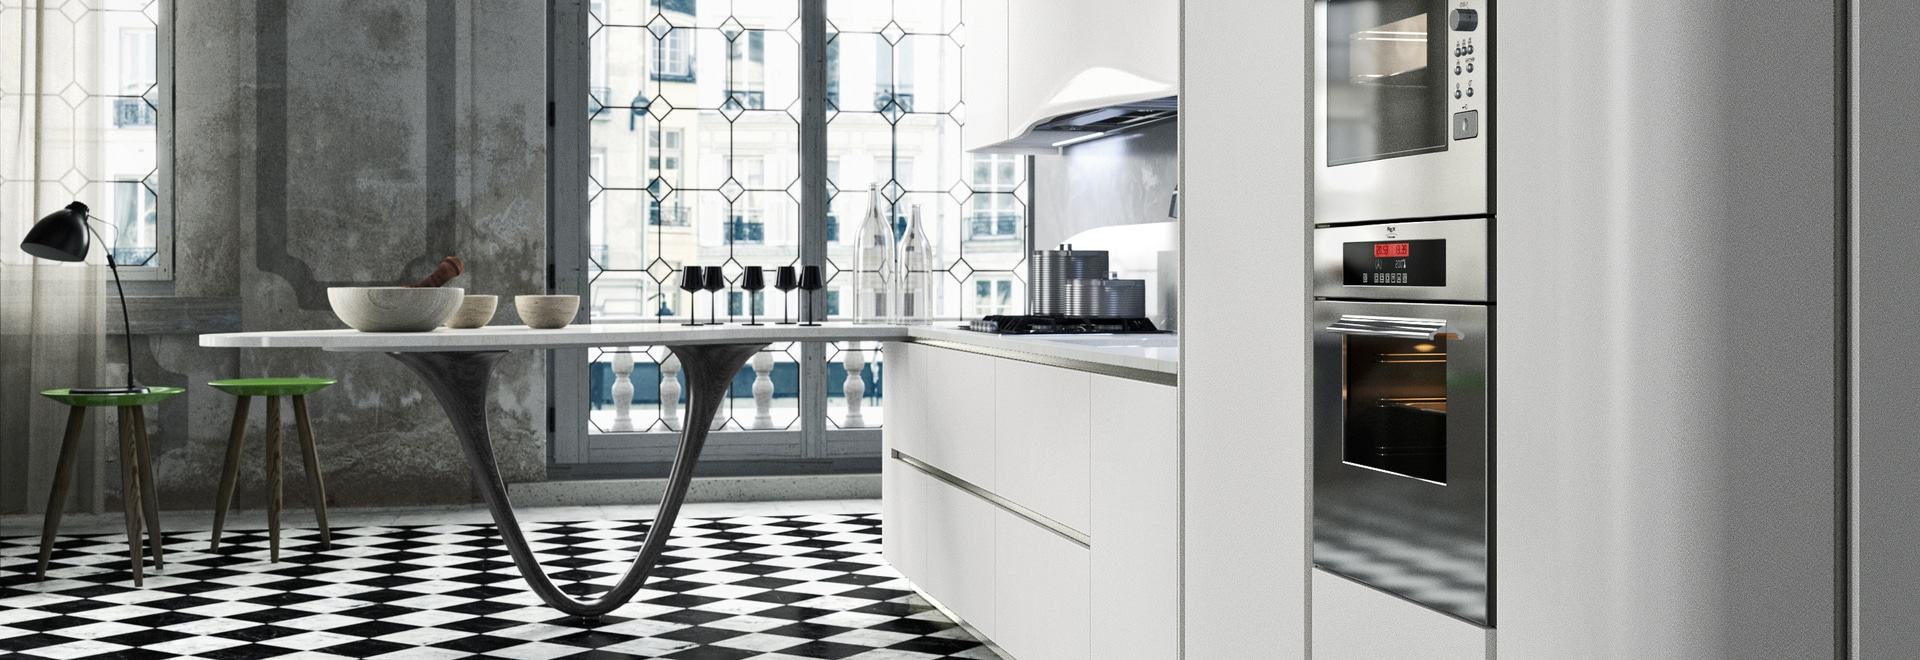 Snaidero introduces carbon fibre in the kitchen - Province of Udine ...